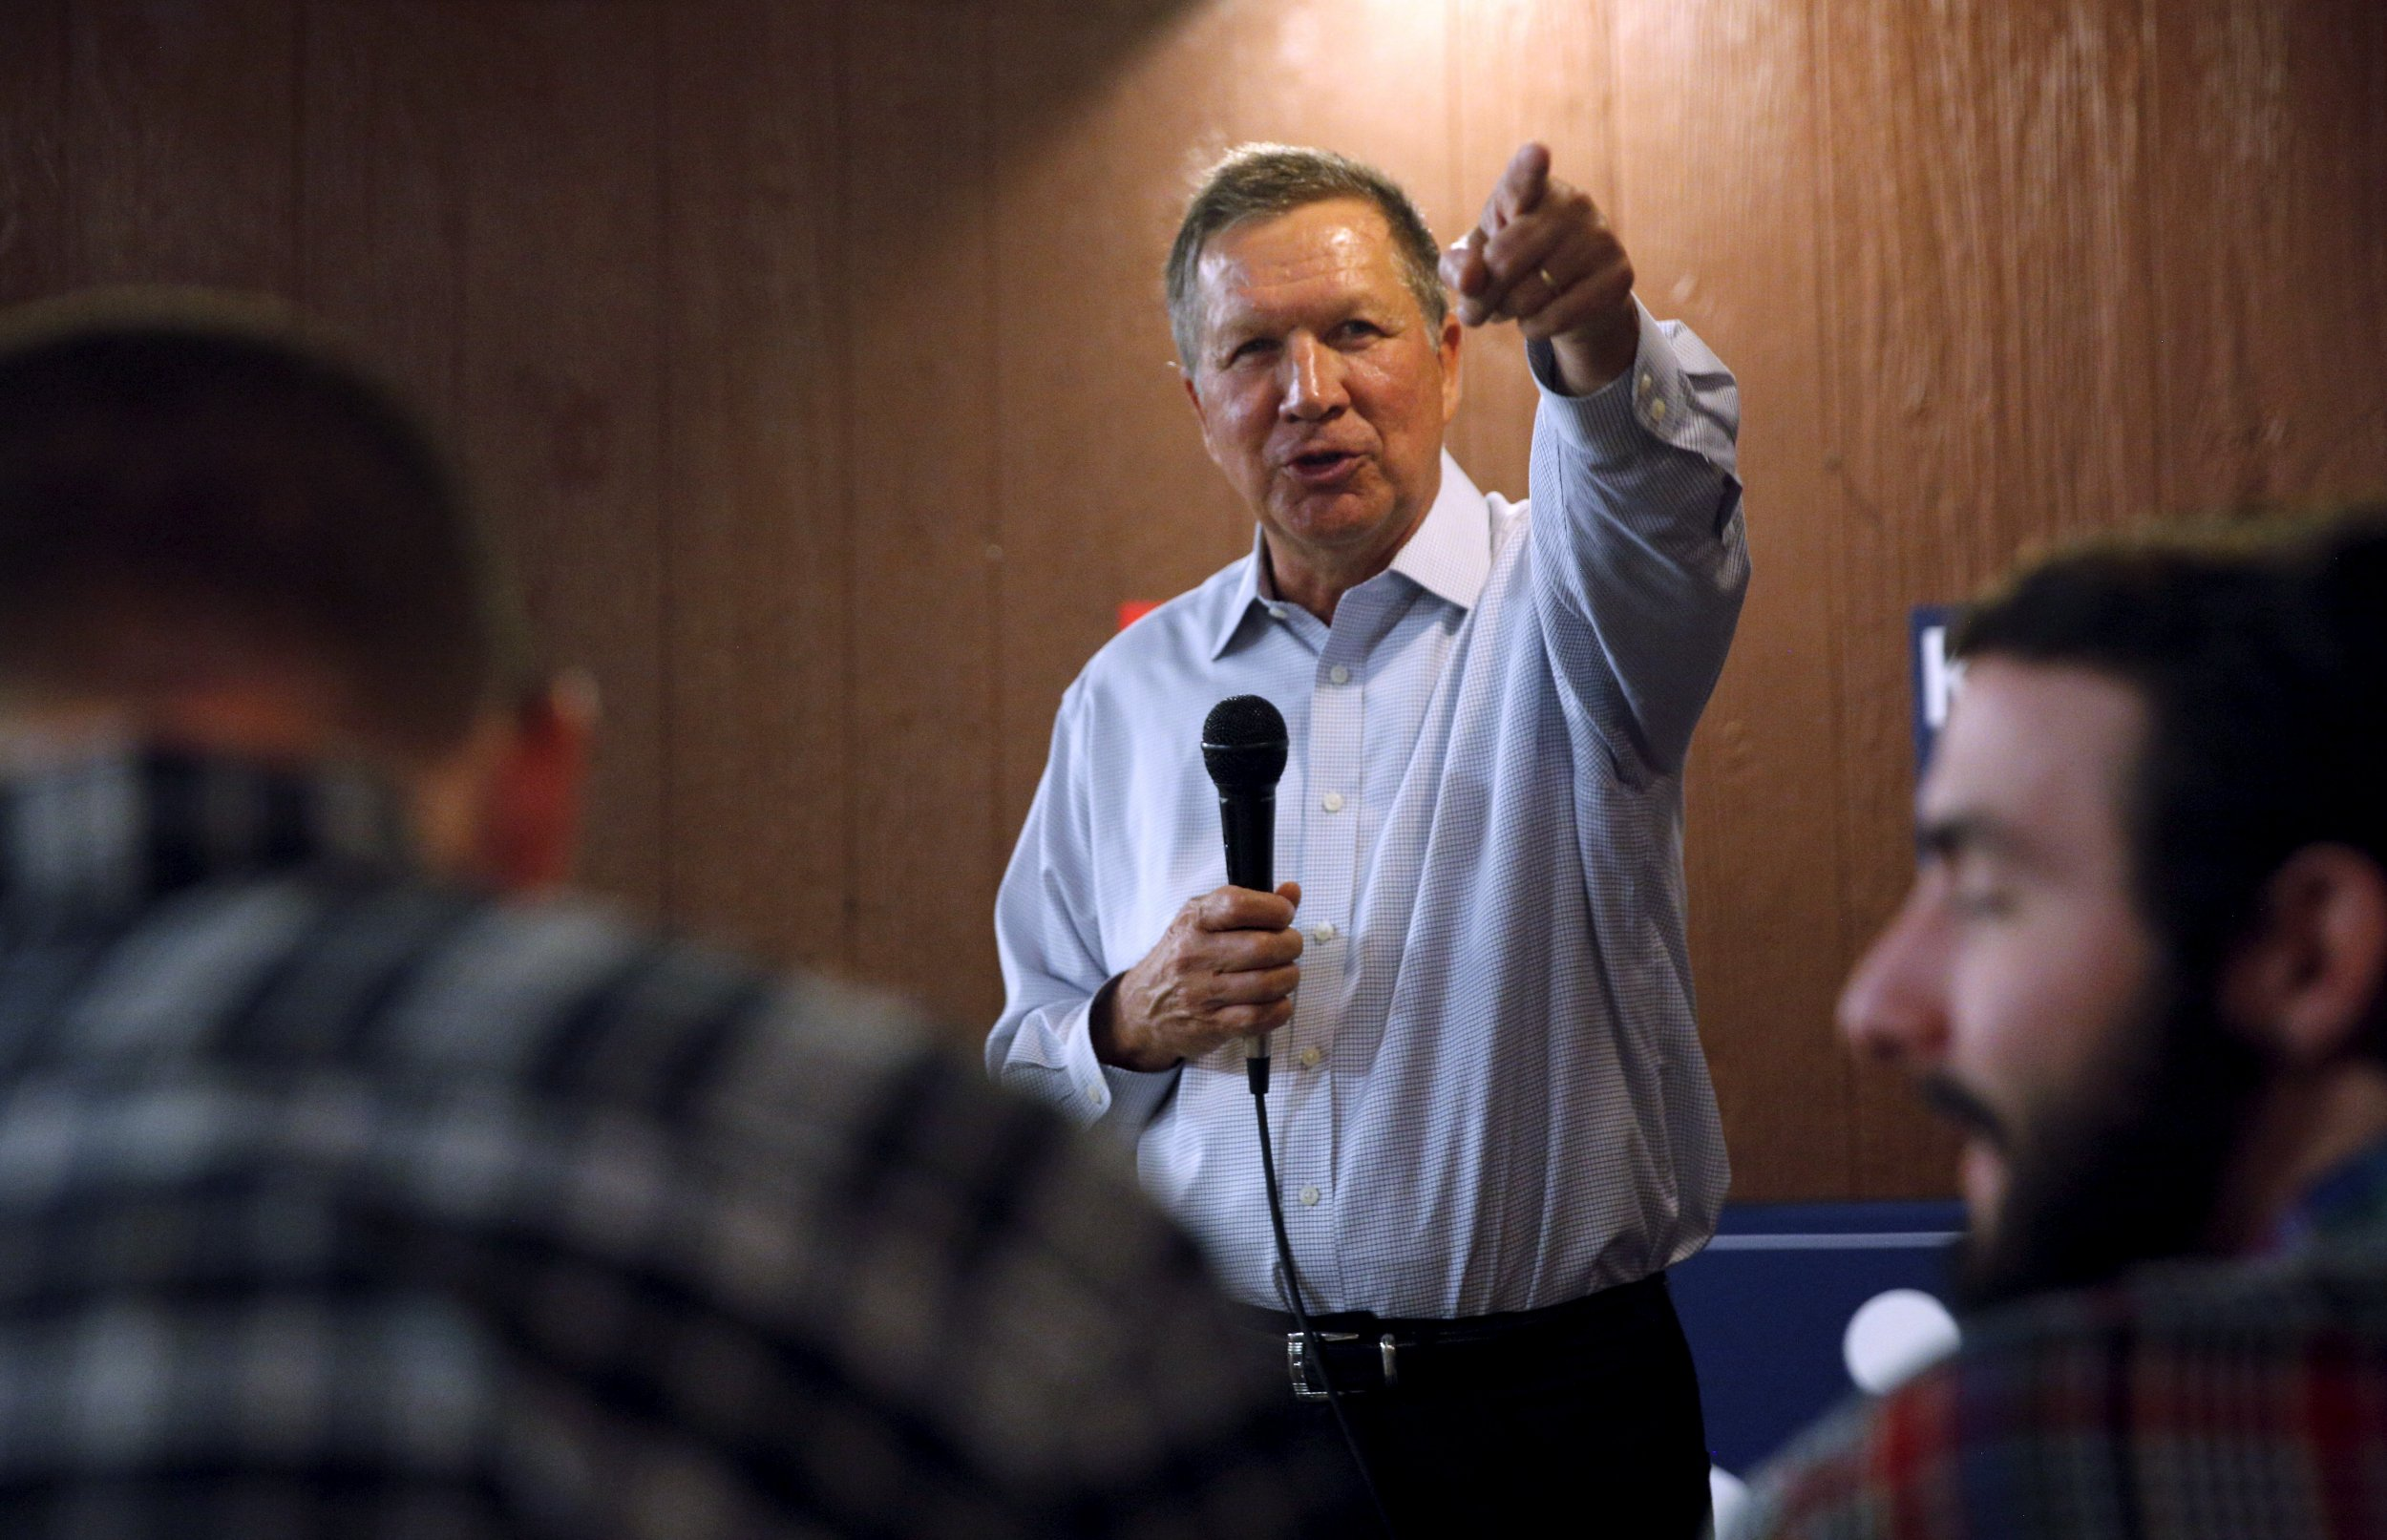 0121_John_Kasich_poll_New_Hampshire_01